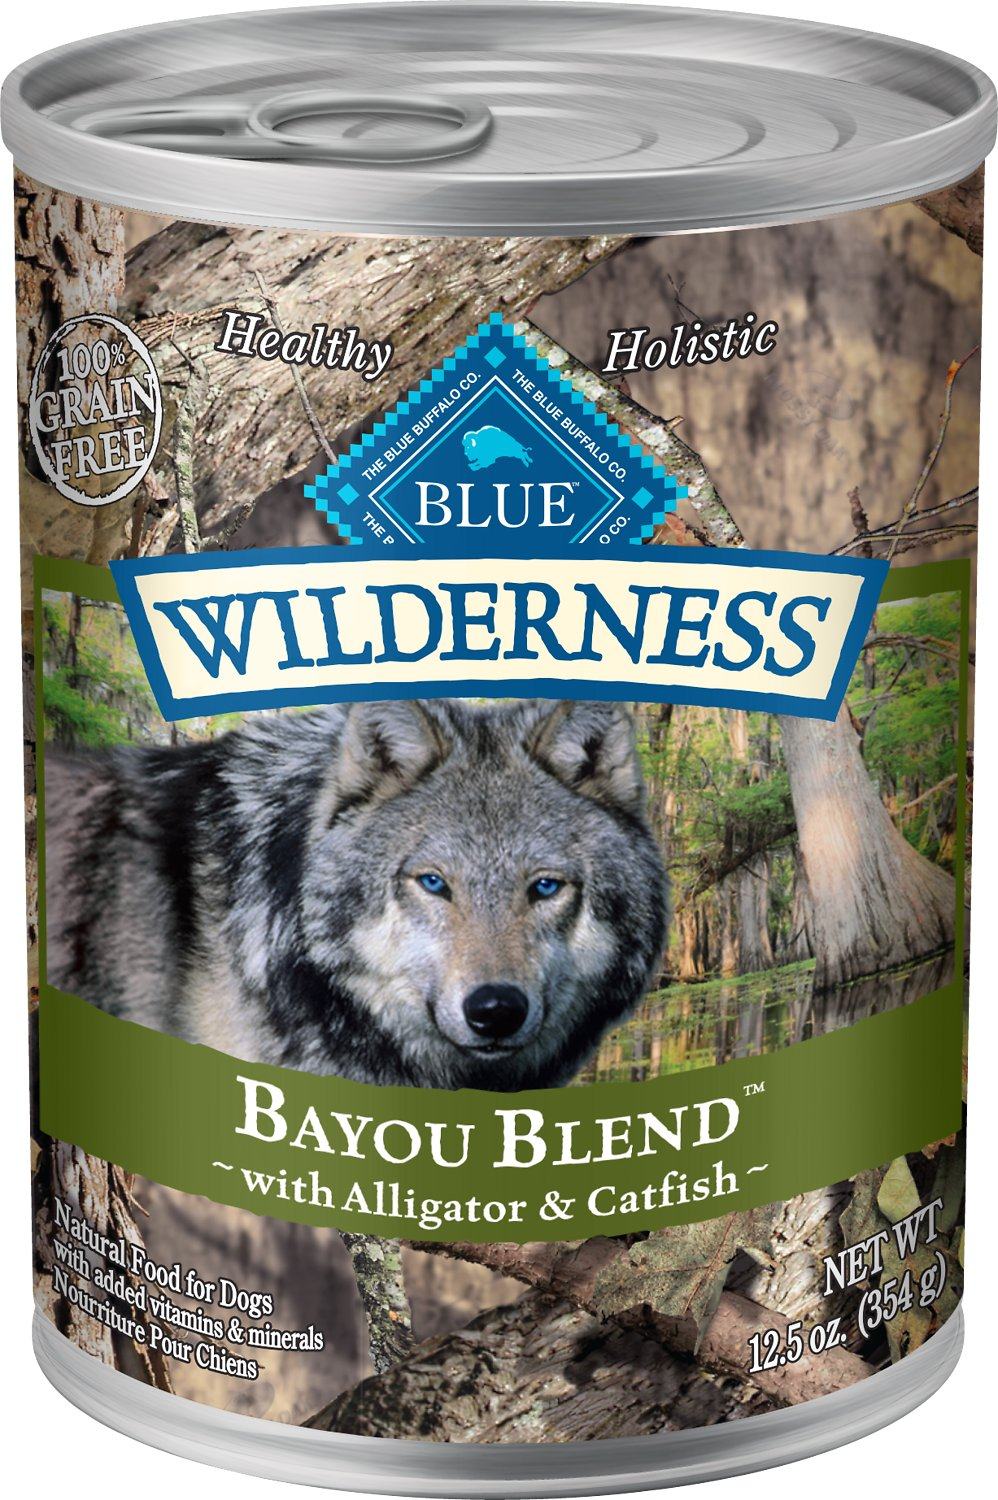 Blue Buffalo Wilderness Bayou Blend with Alligator & Catfish Grain-Free Canned Dog Food, 12.5-oz